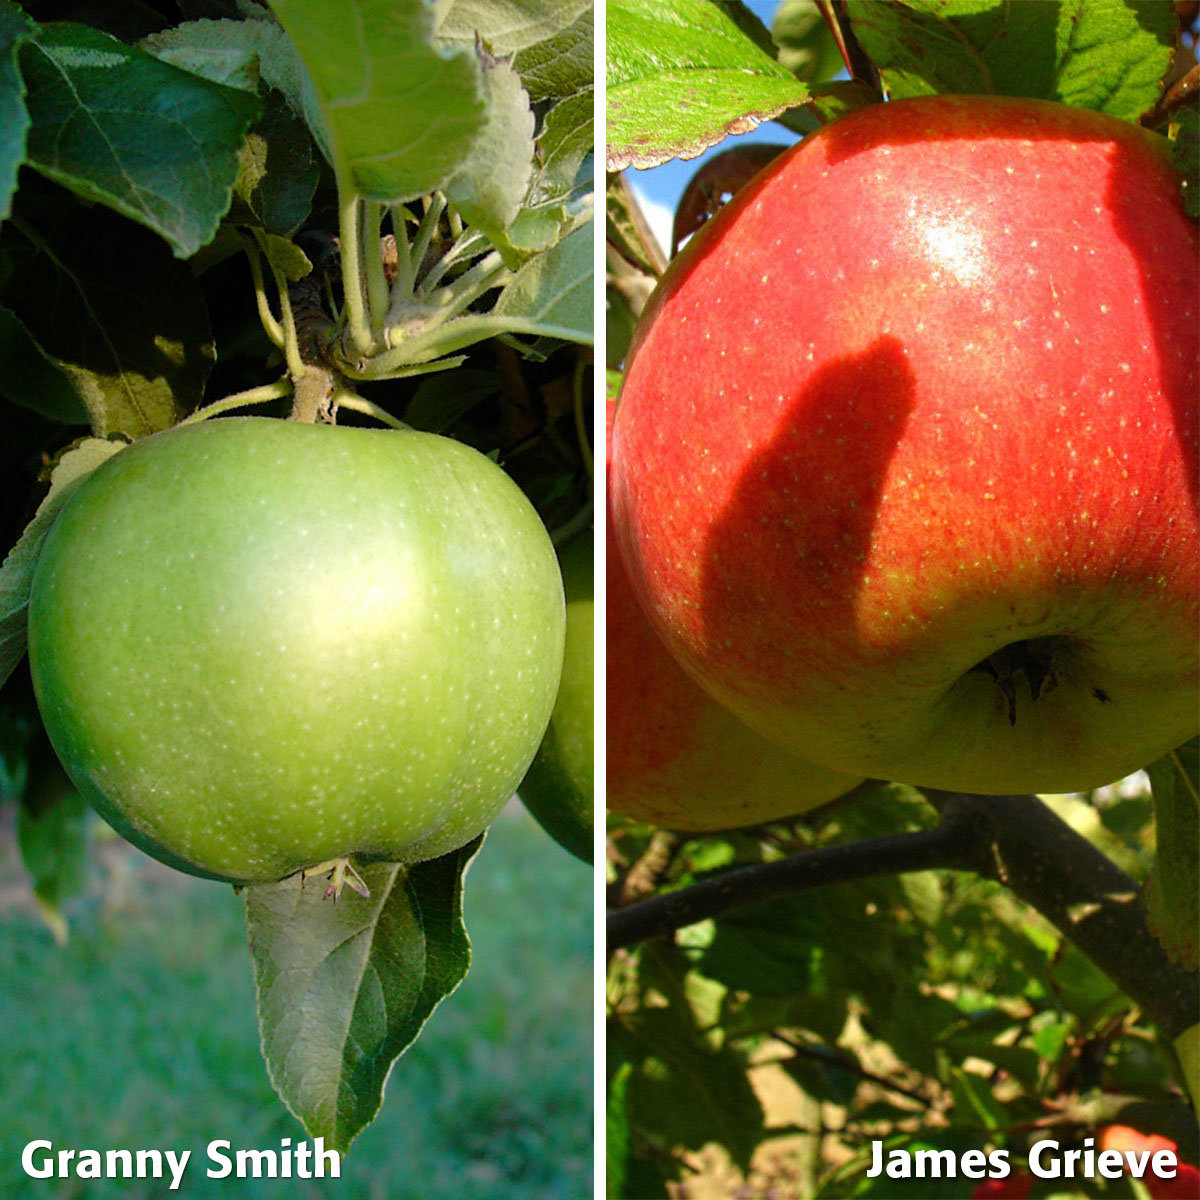 Duo-Apfel Granny Smith - James Grieve, 2-jährig